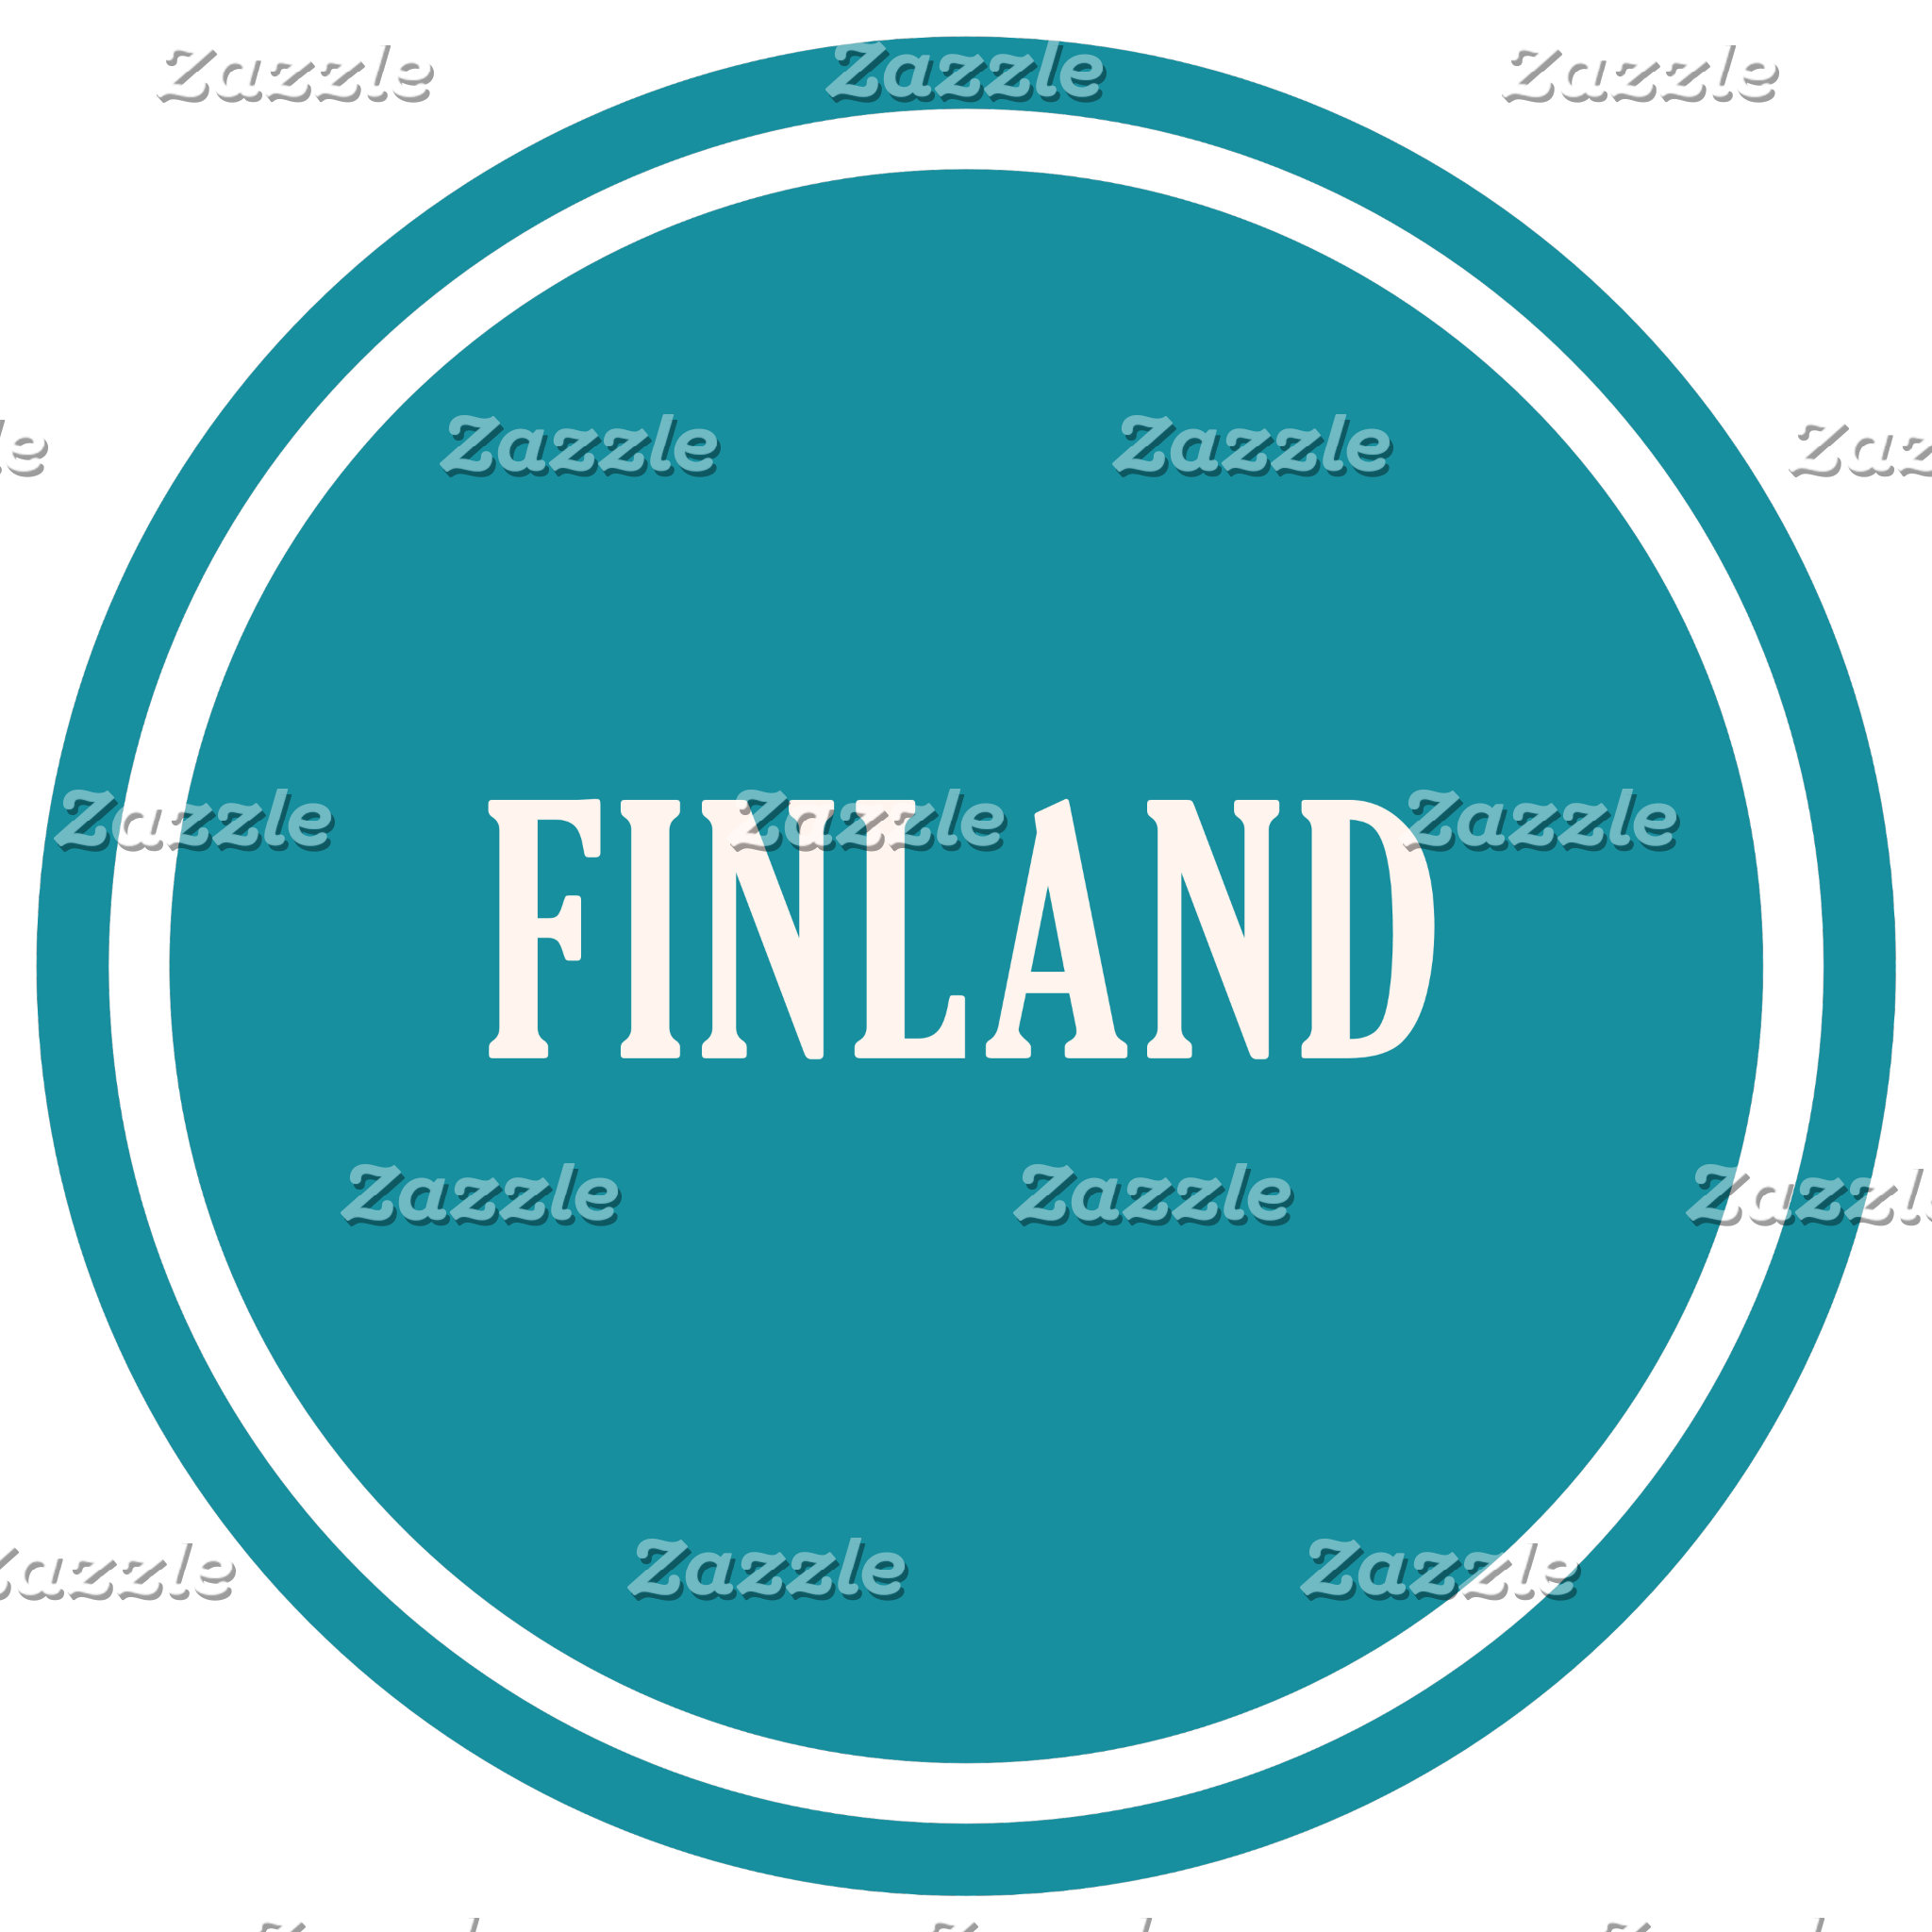 FINLAND items